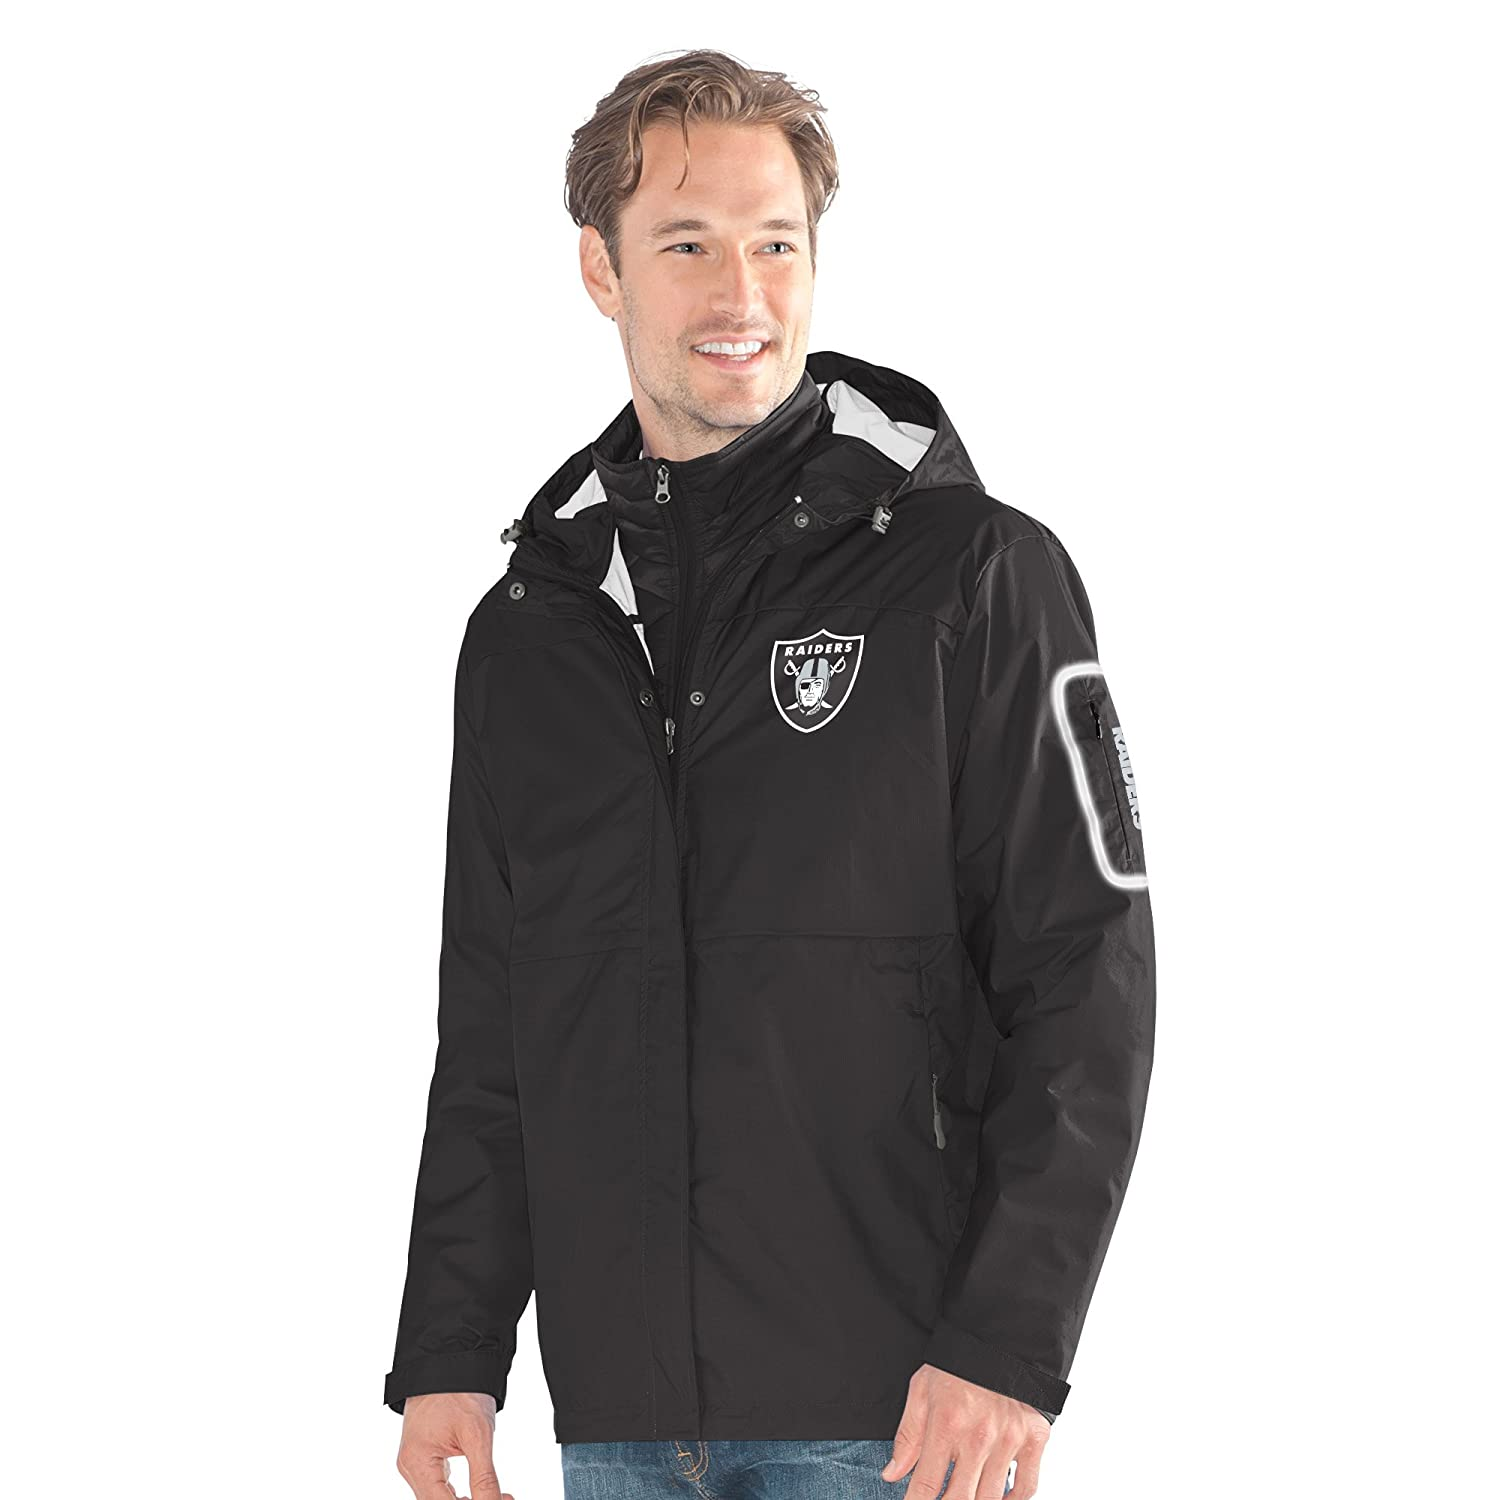 6X G-III Mens Acclimation 3-in-1 Systems Jacket Black